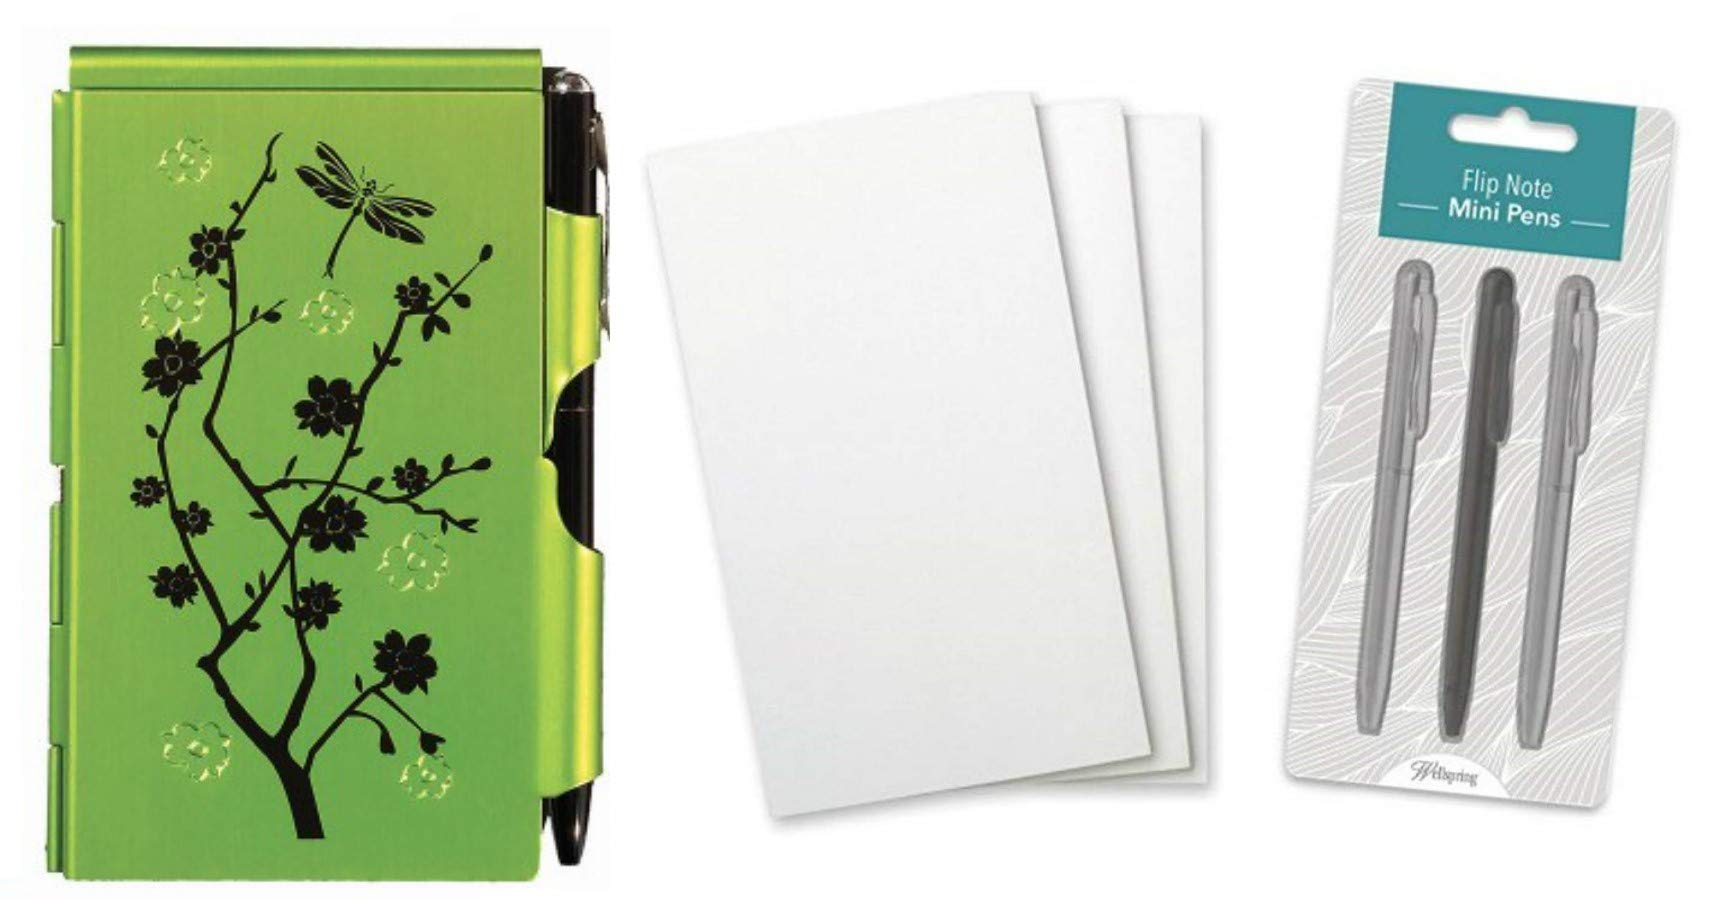 Wellspring Flip Note Notepad Set: Lime Blossoms Flip Note, 3 Flip Note Refill Pads and a 3 Mini Pen Refill